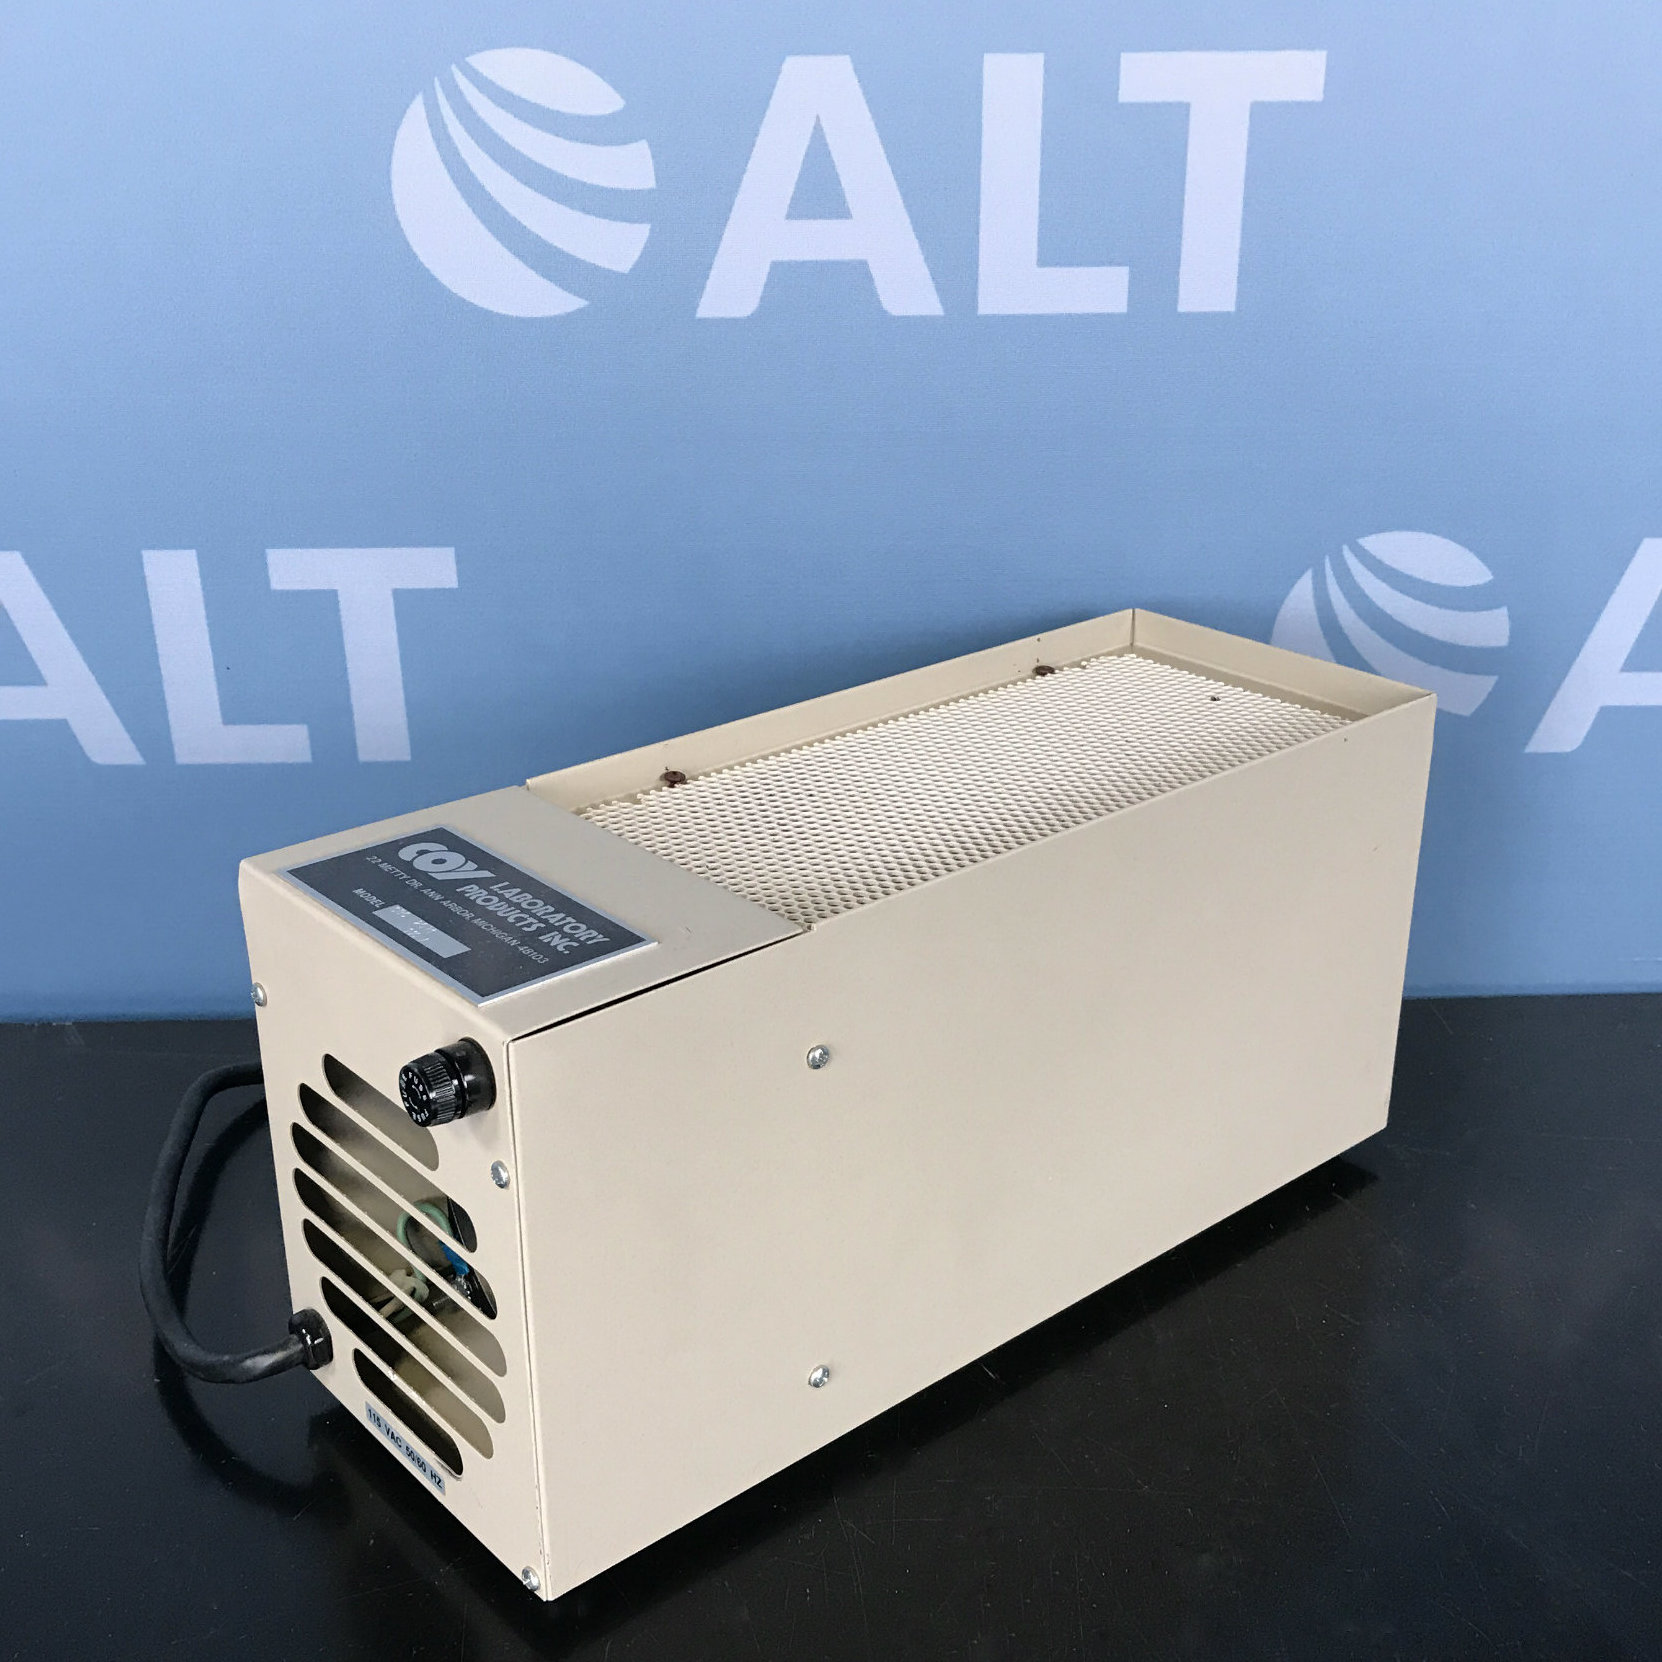 Coy Laboratory Products 8535-027 Unheated Catalyst Box Image